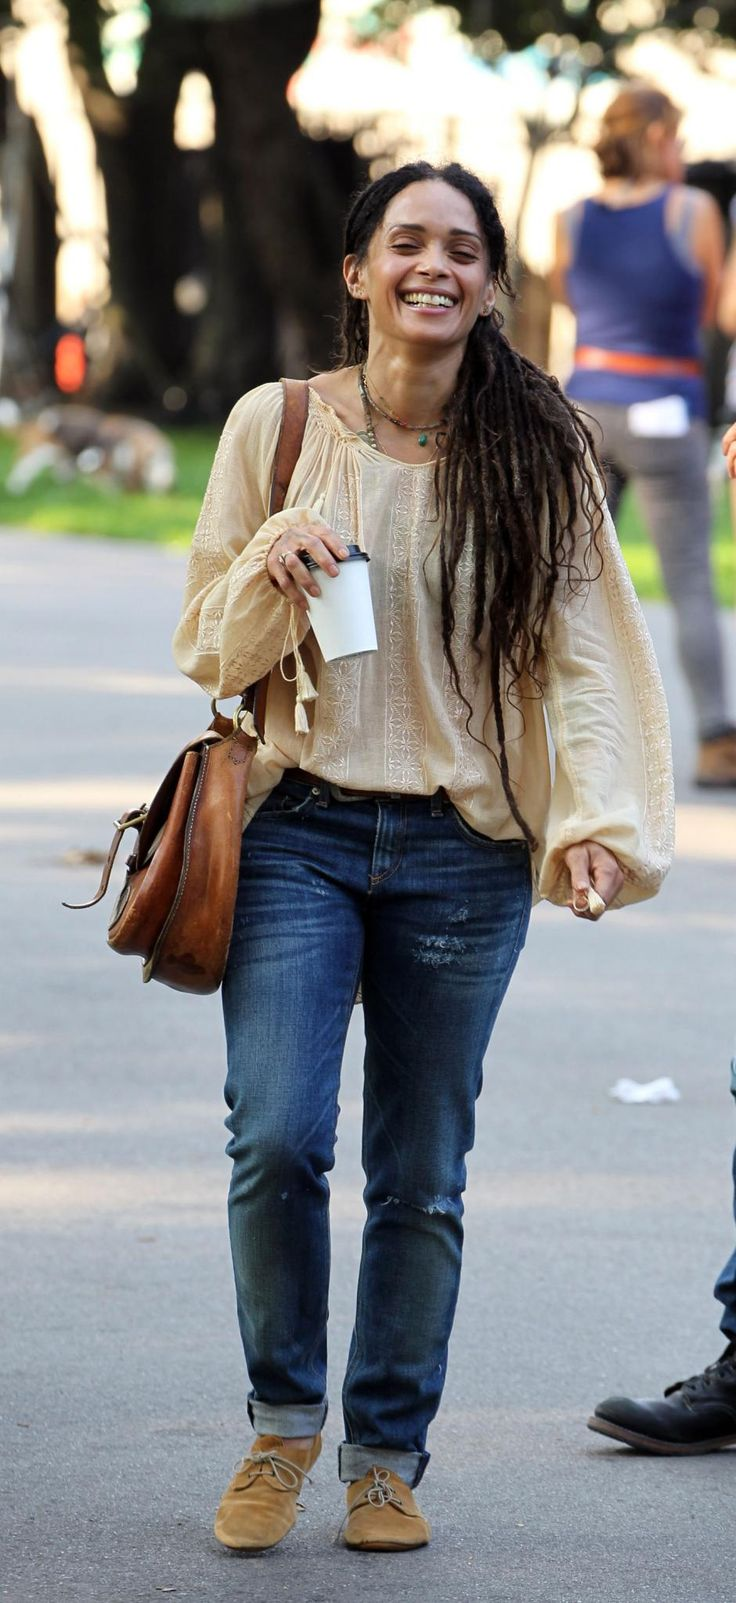 I love this casual style - this looks so great - why can I never get this look together?!  #fashiongoals